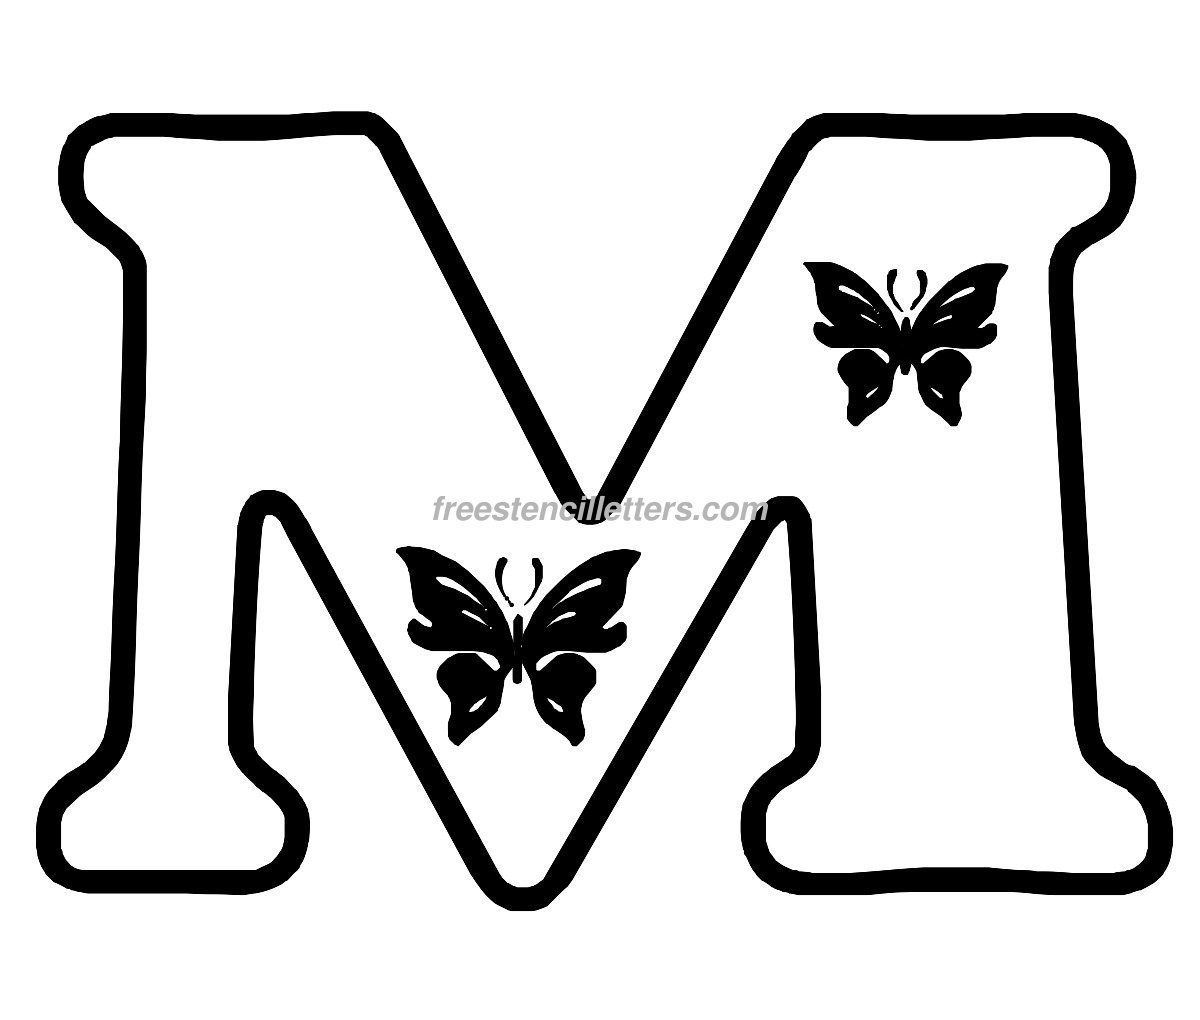 Worksheets Large Letters To Print And Cut Out print m letter stencil free letters download to and cut out